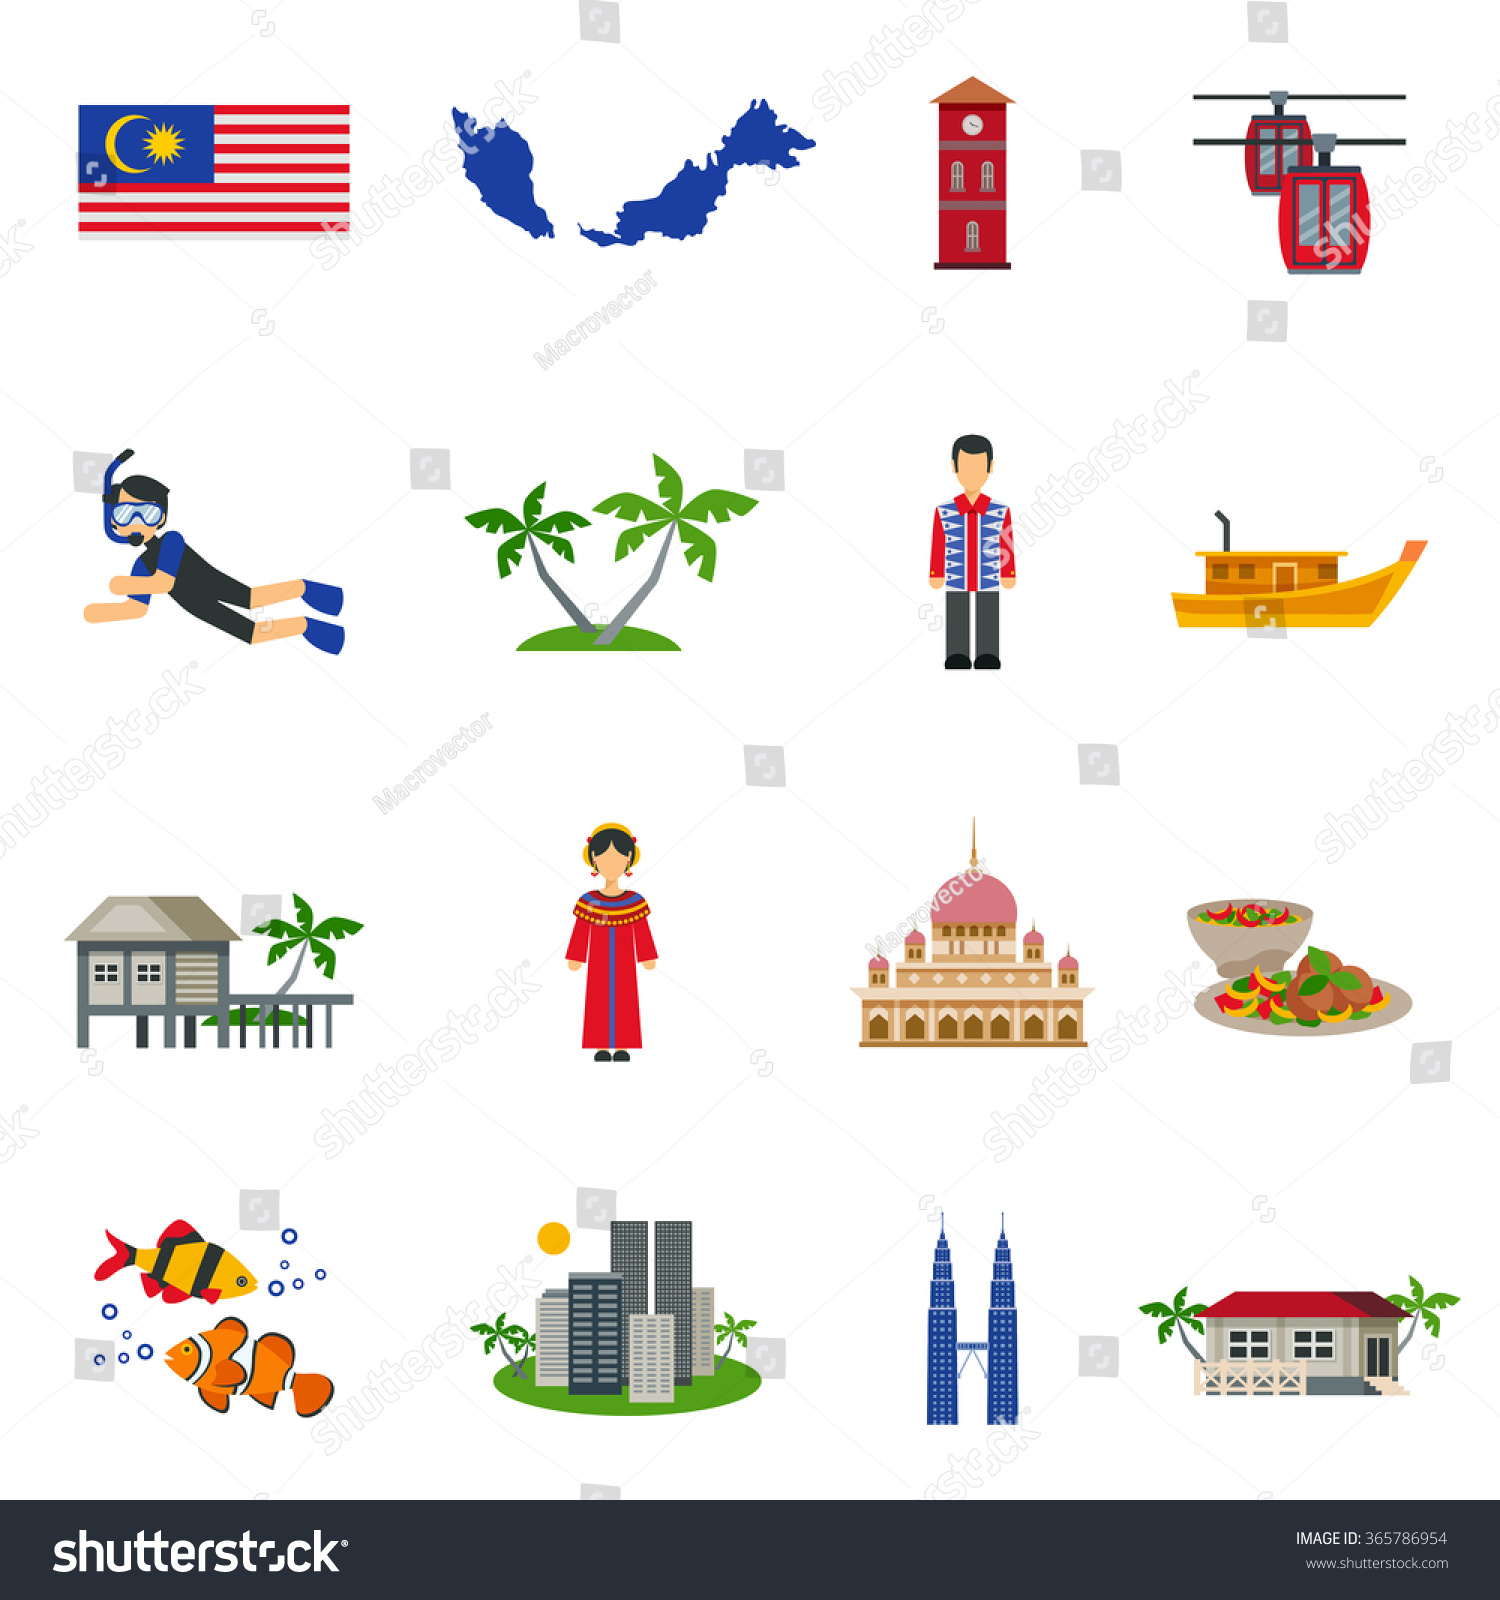 Royalty Free Malaysian Culture Symbols And Tourist 365786954 Stock